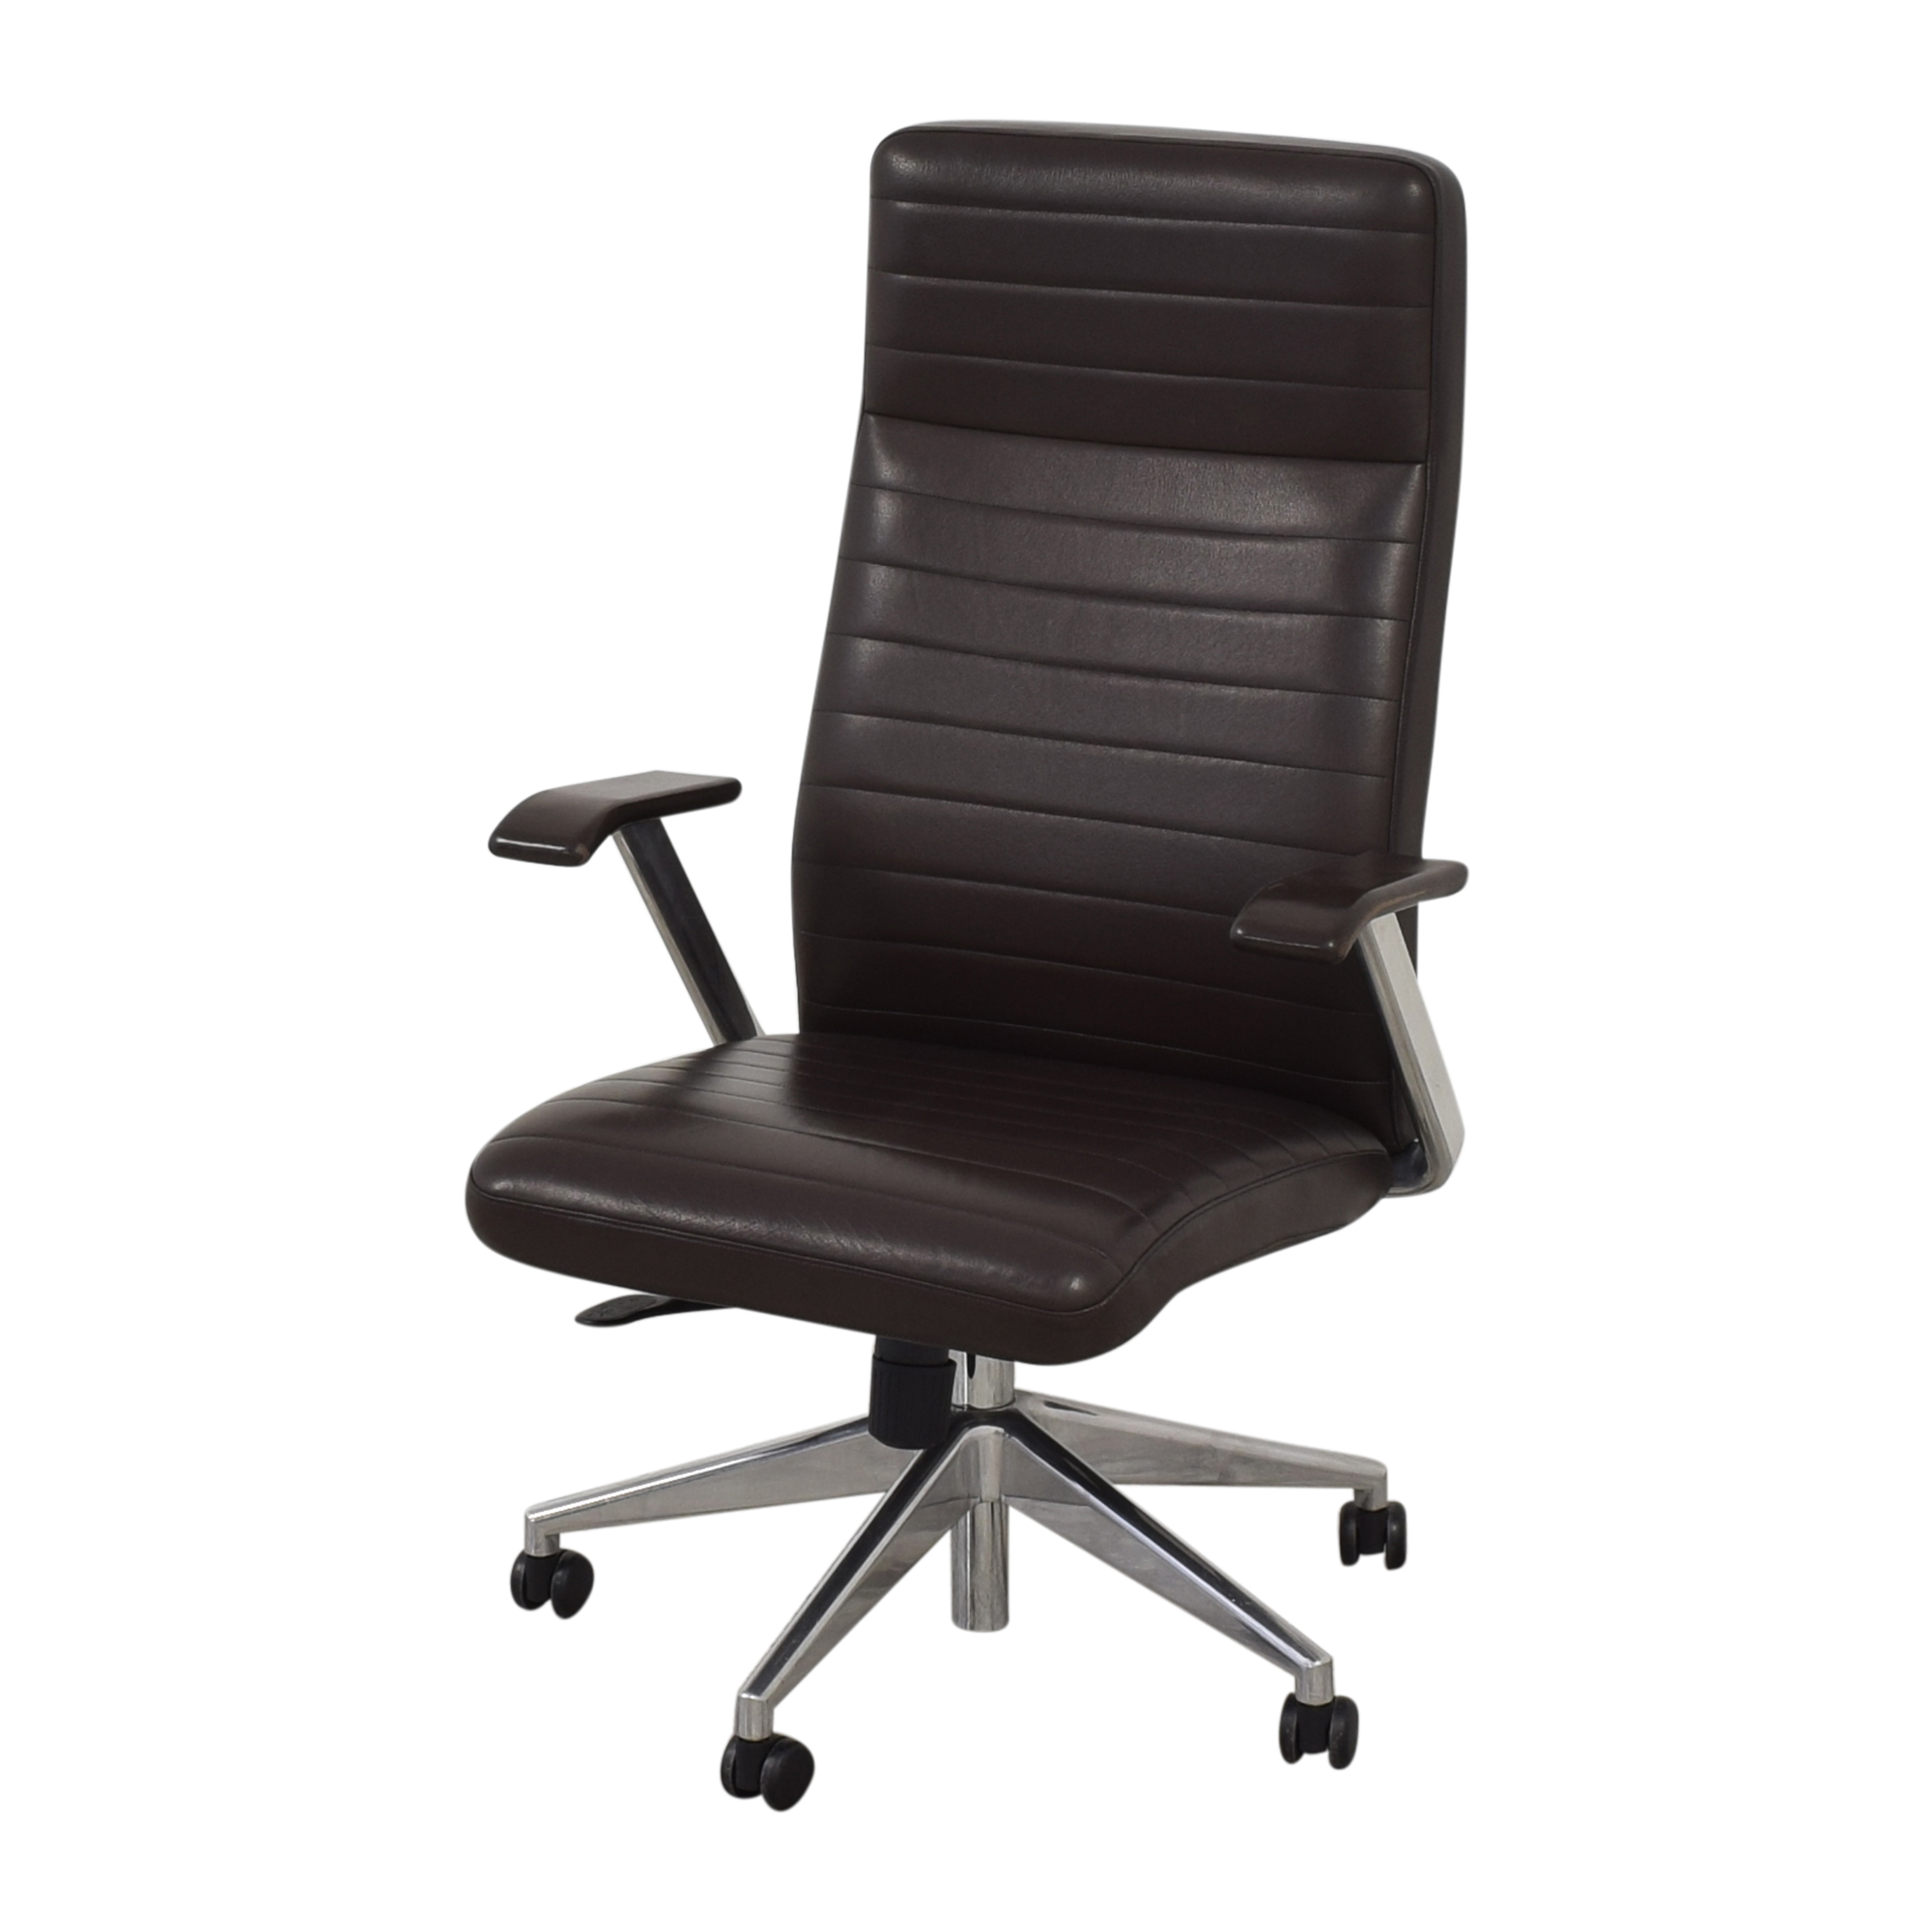 HBF HBF Mode High Back Channel Stitched Swivel Chair